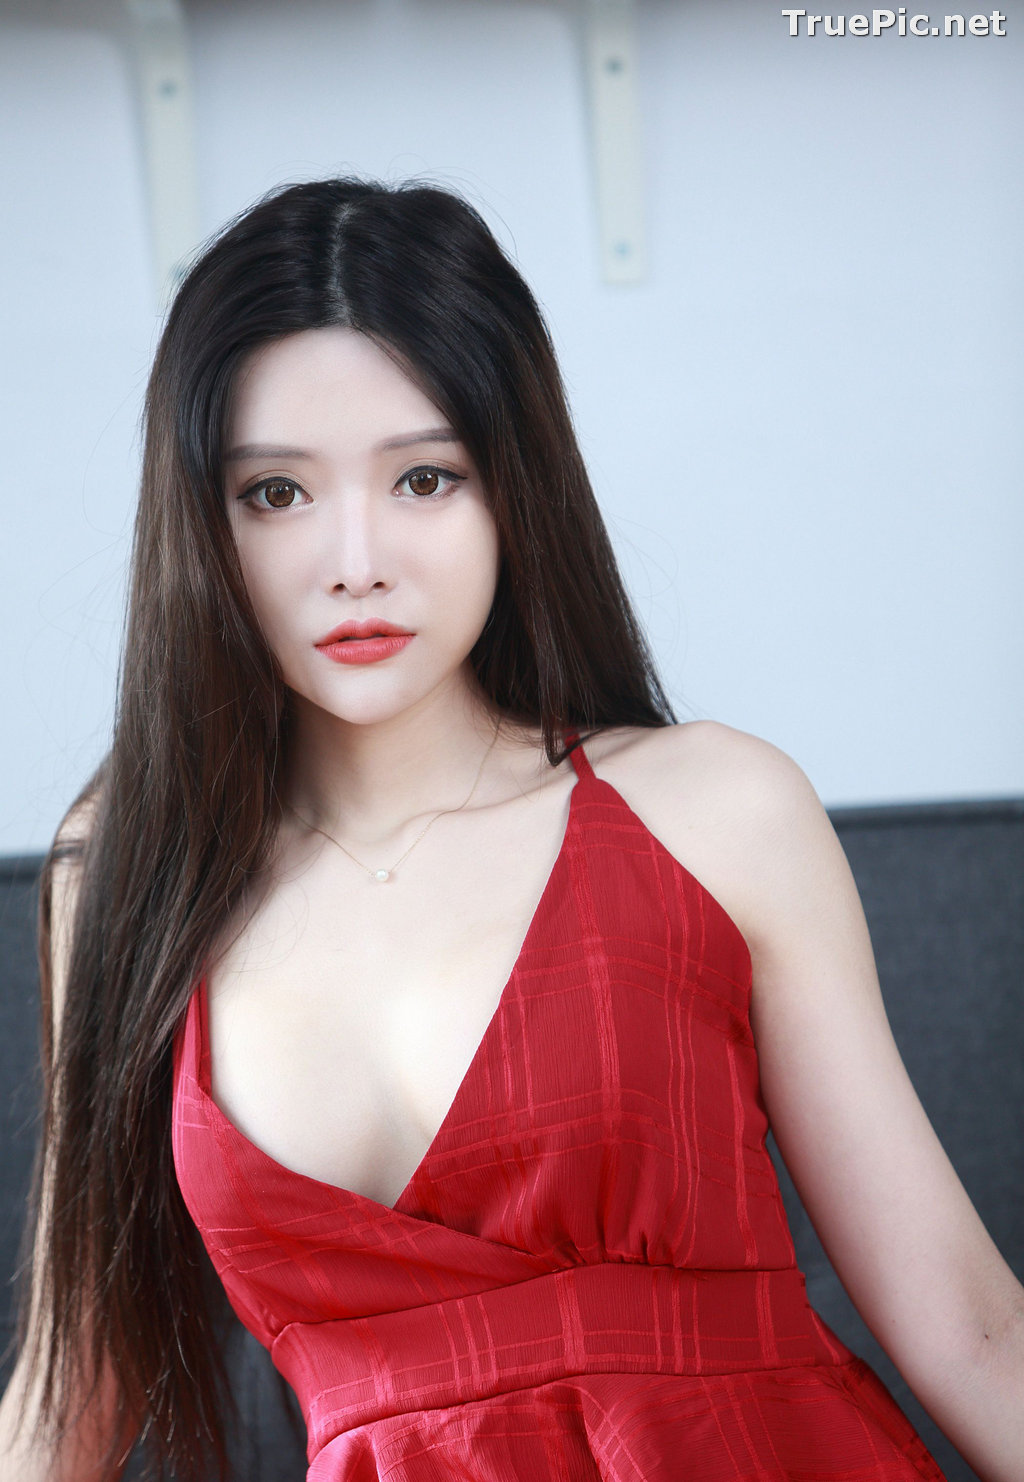 Image Taiwanese Model – 莊舒潔 (ViVi) – Sexy and Beautiful Christmas Girl - TruePic.net - Picture-3